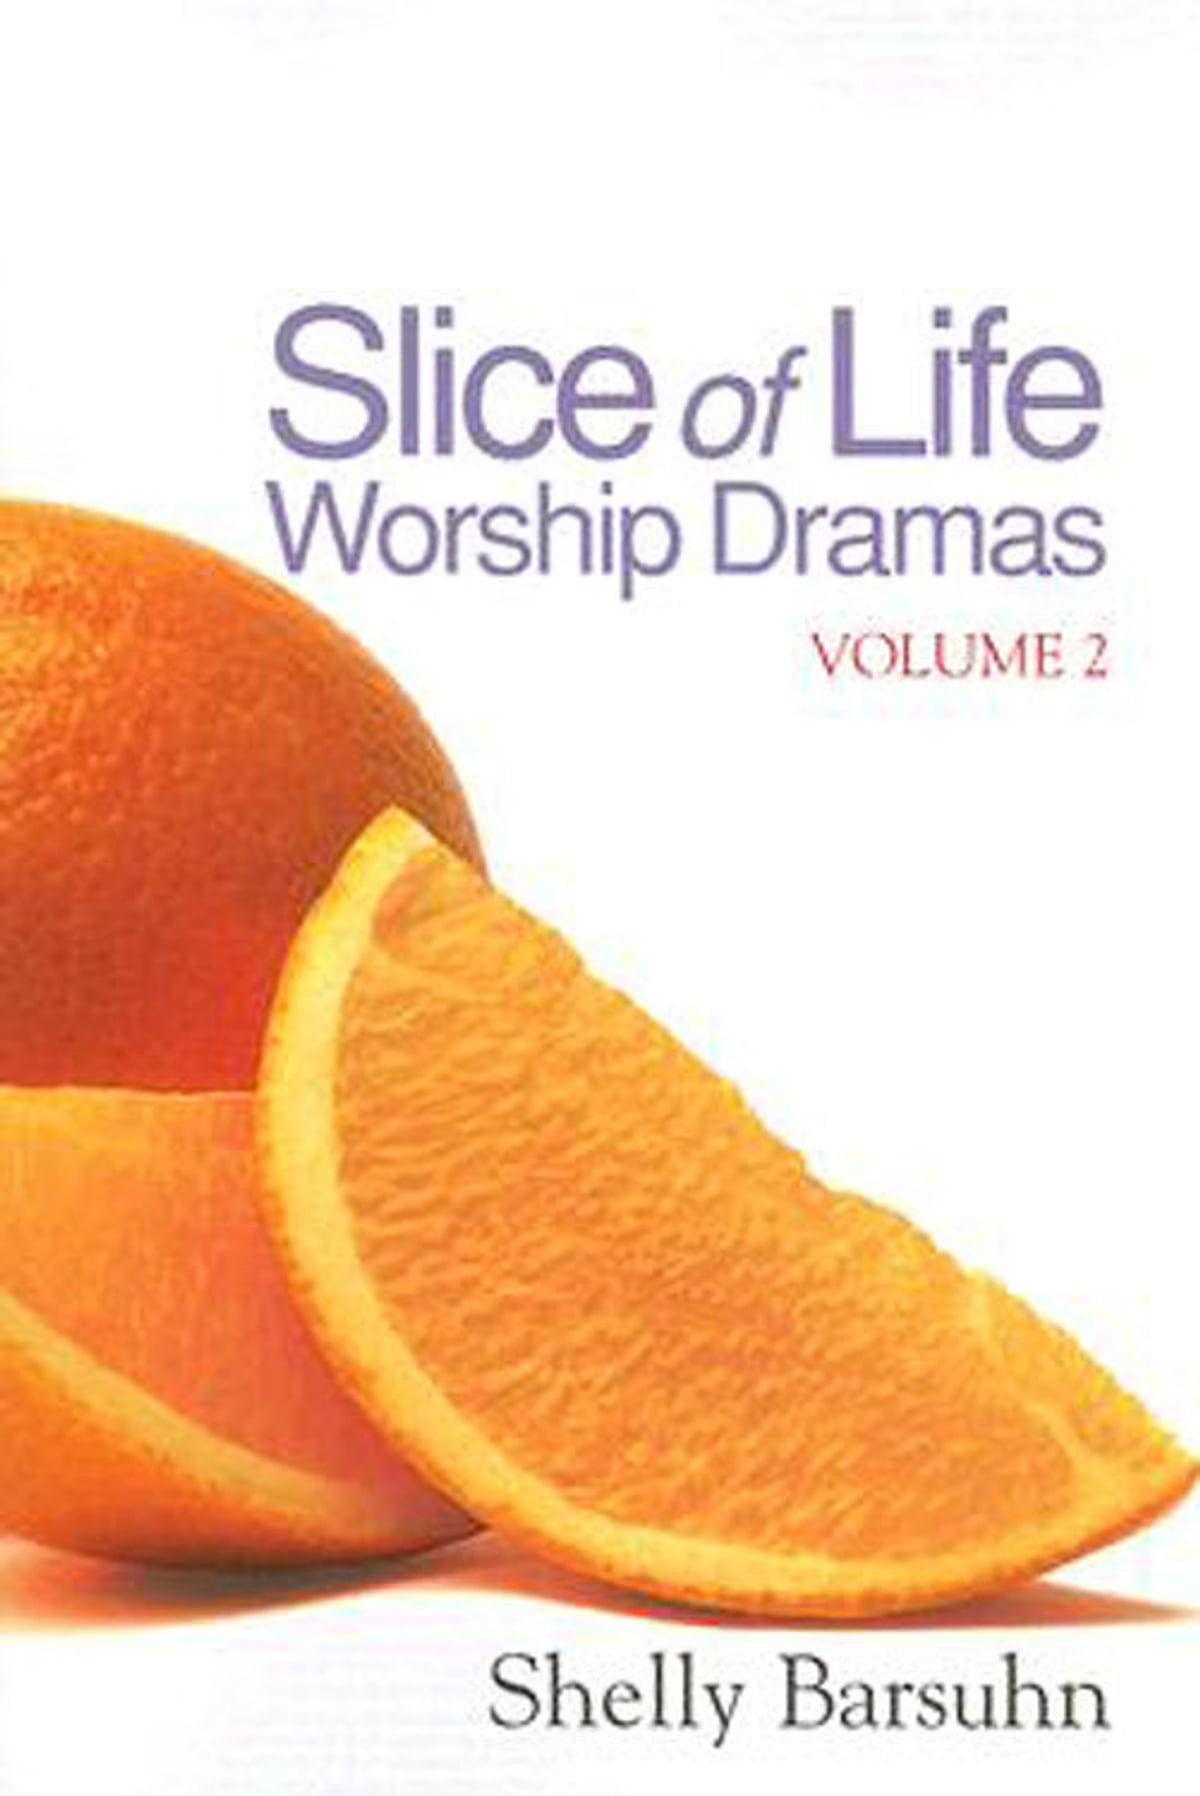 Slice of life worship dramas volume 2 ebook by shelly barsuhn slice of life worship dramas volume 2 ebook by shelly barsuhn 9781426739279 rakuten kobo fandeluxe Ebook collections